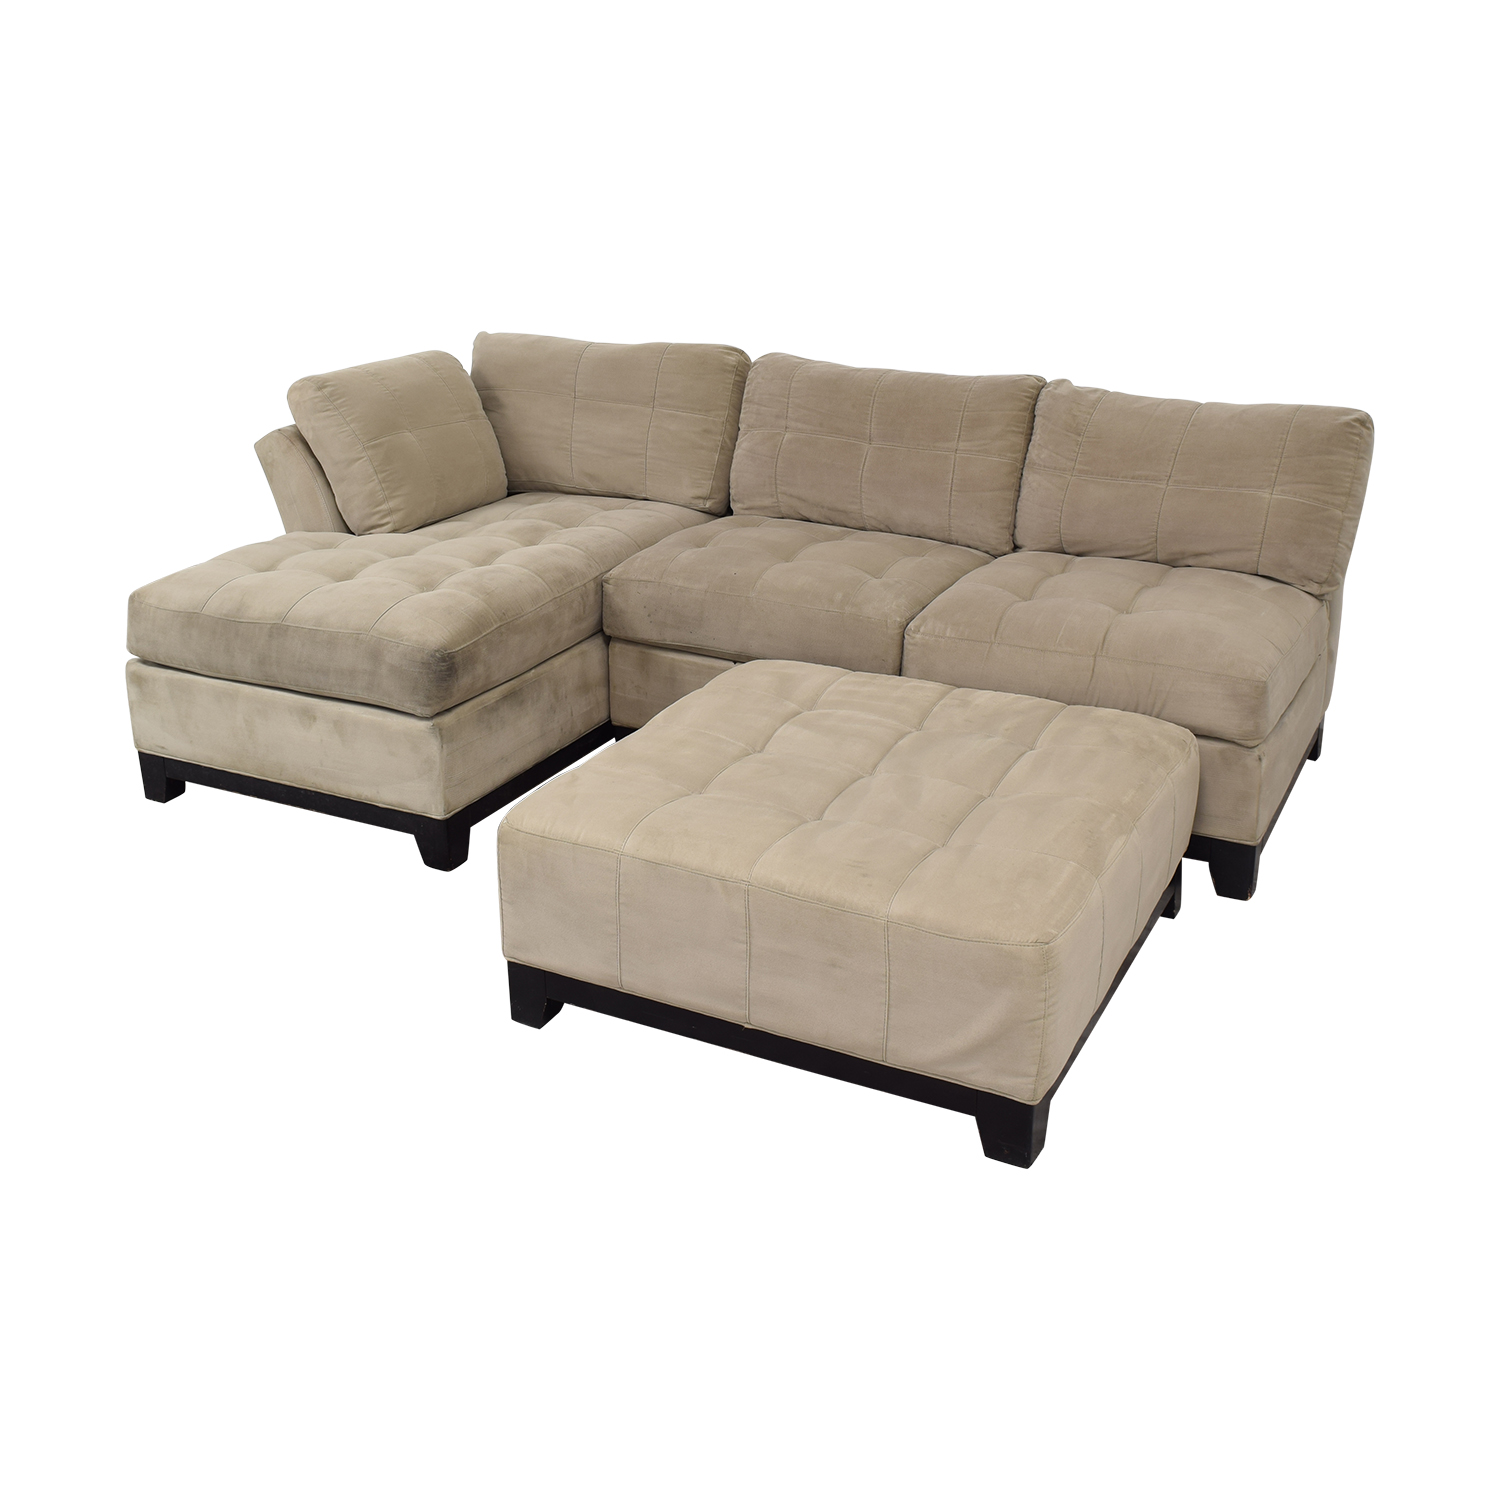 Cindy Crawford Home Cindy Crawford Home Microfiber Sectional with Ottoman Sofas